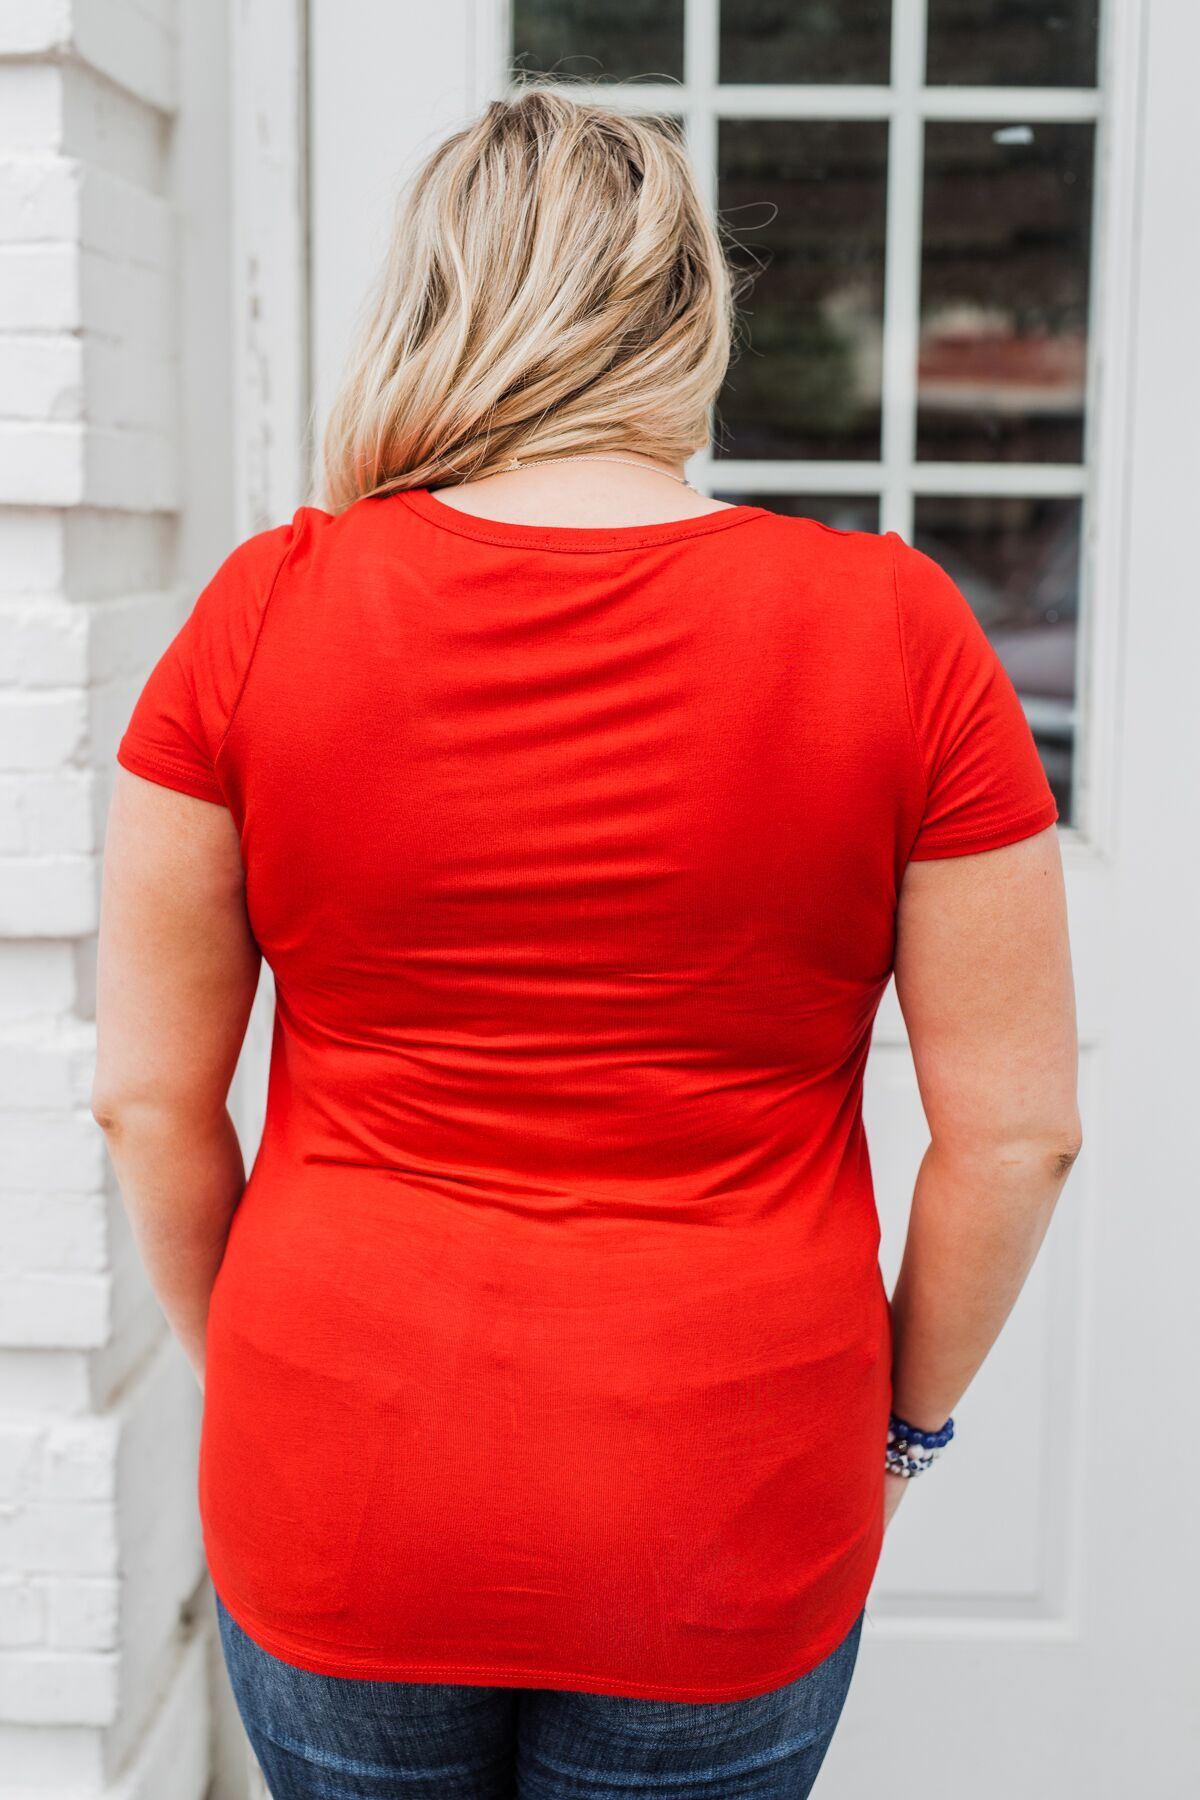 Meet Me Here Short Sleeve Top- Scarlet Red